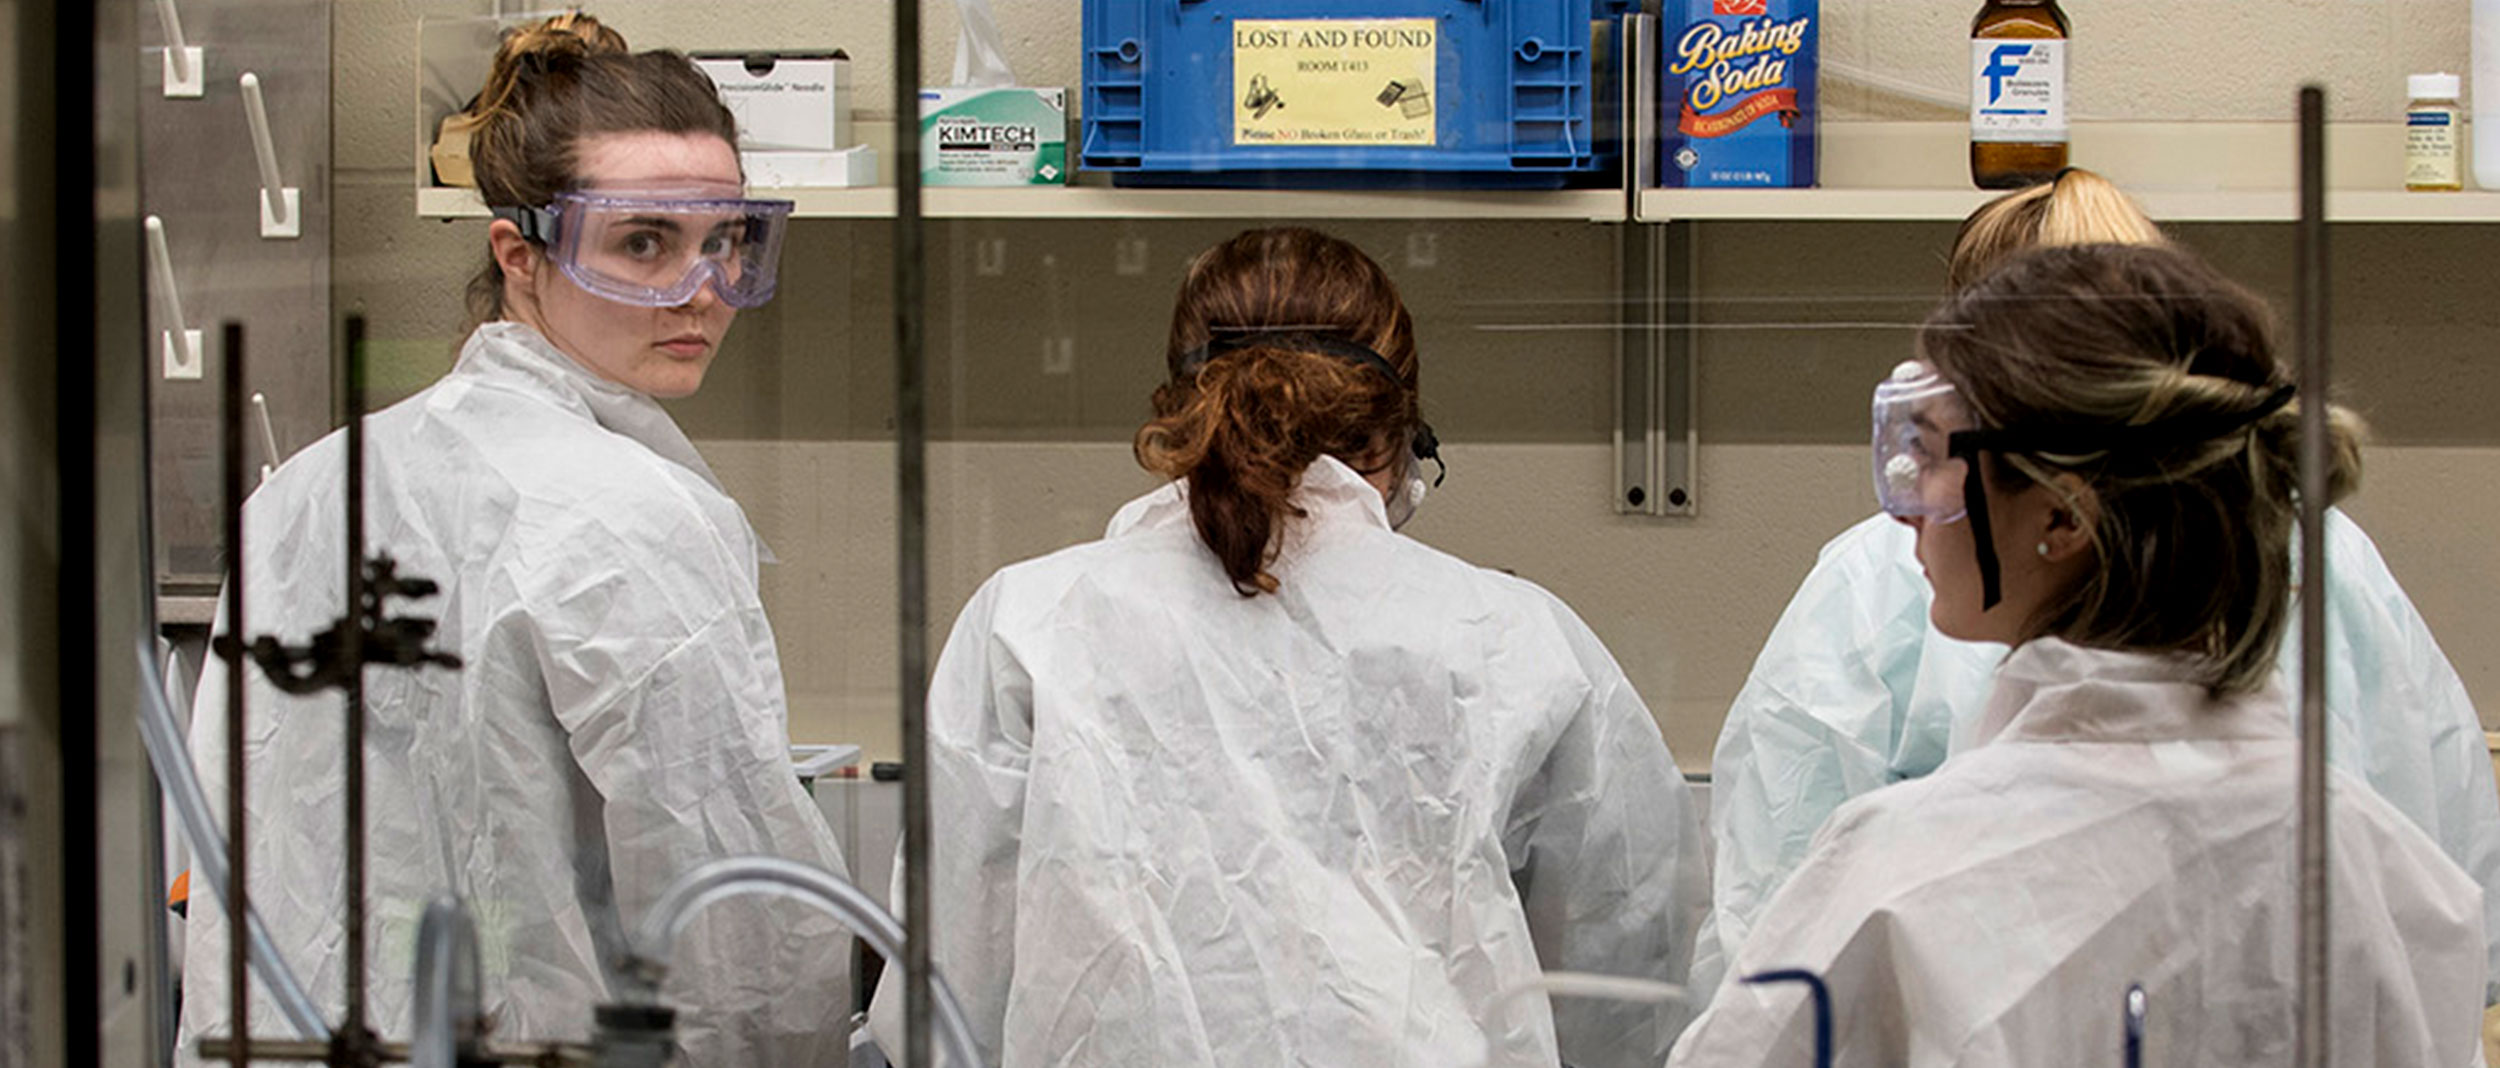 Group of students in a lab during a pharmacy class on Feb. 16, 2017. (Sean Flynn/UConn Photo)